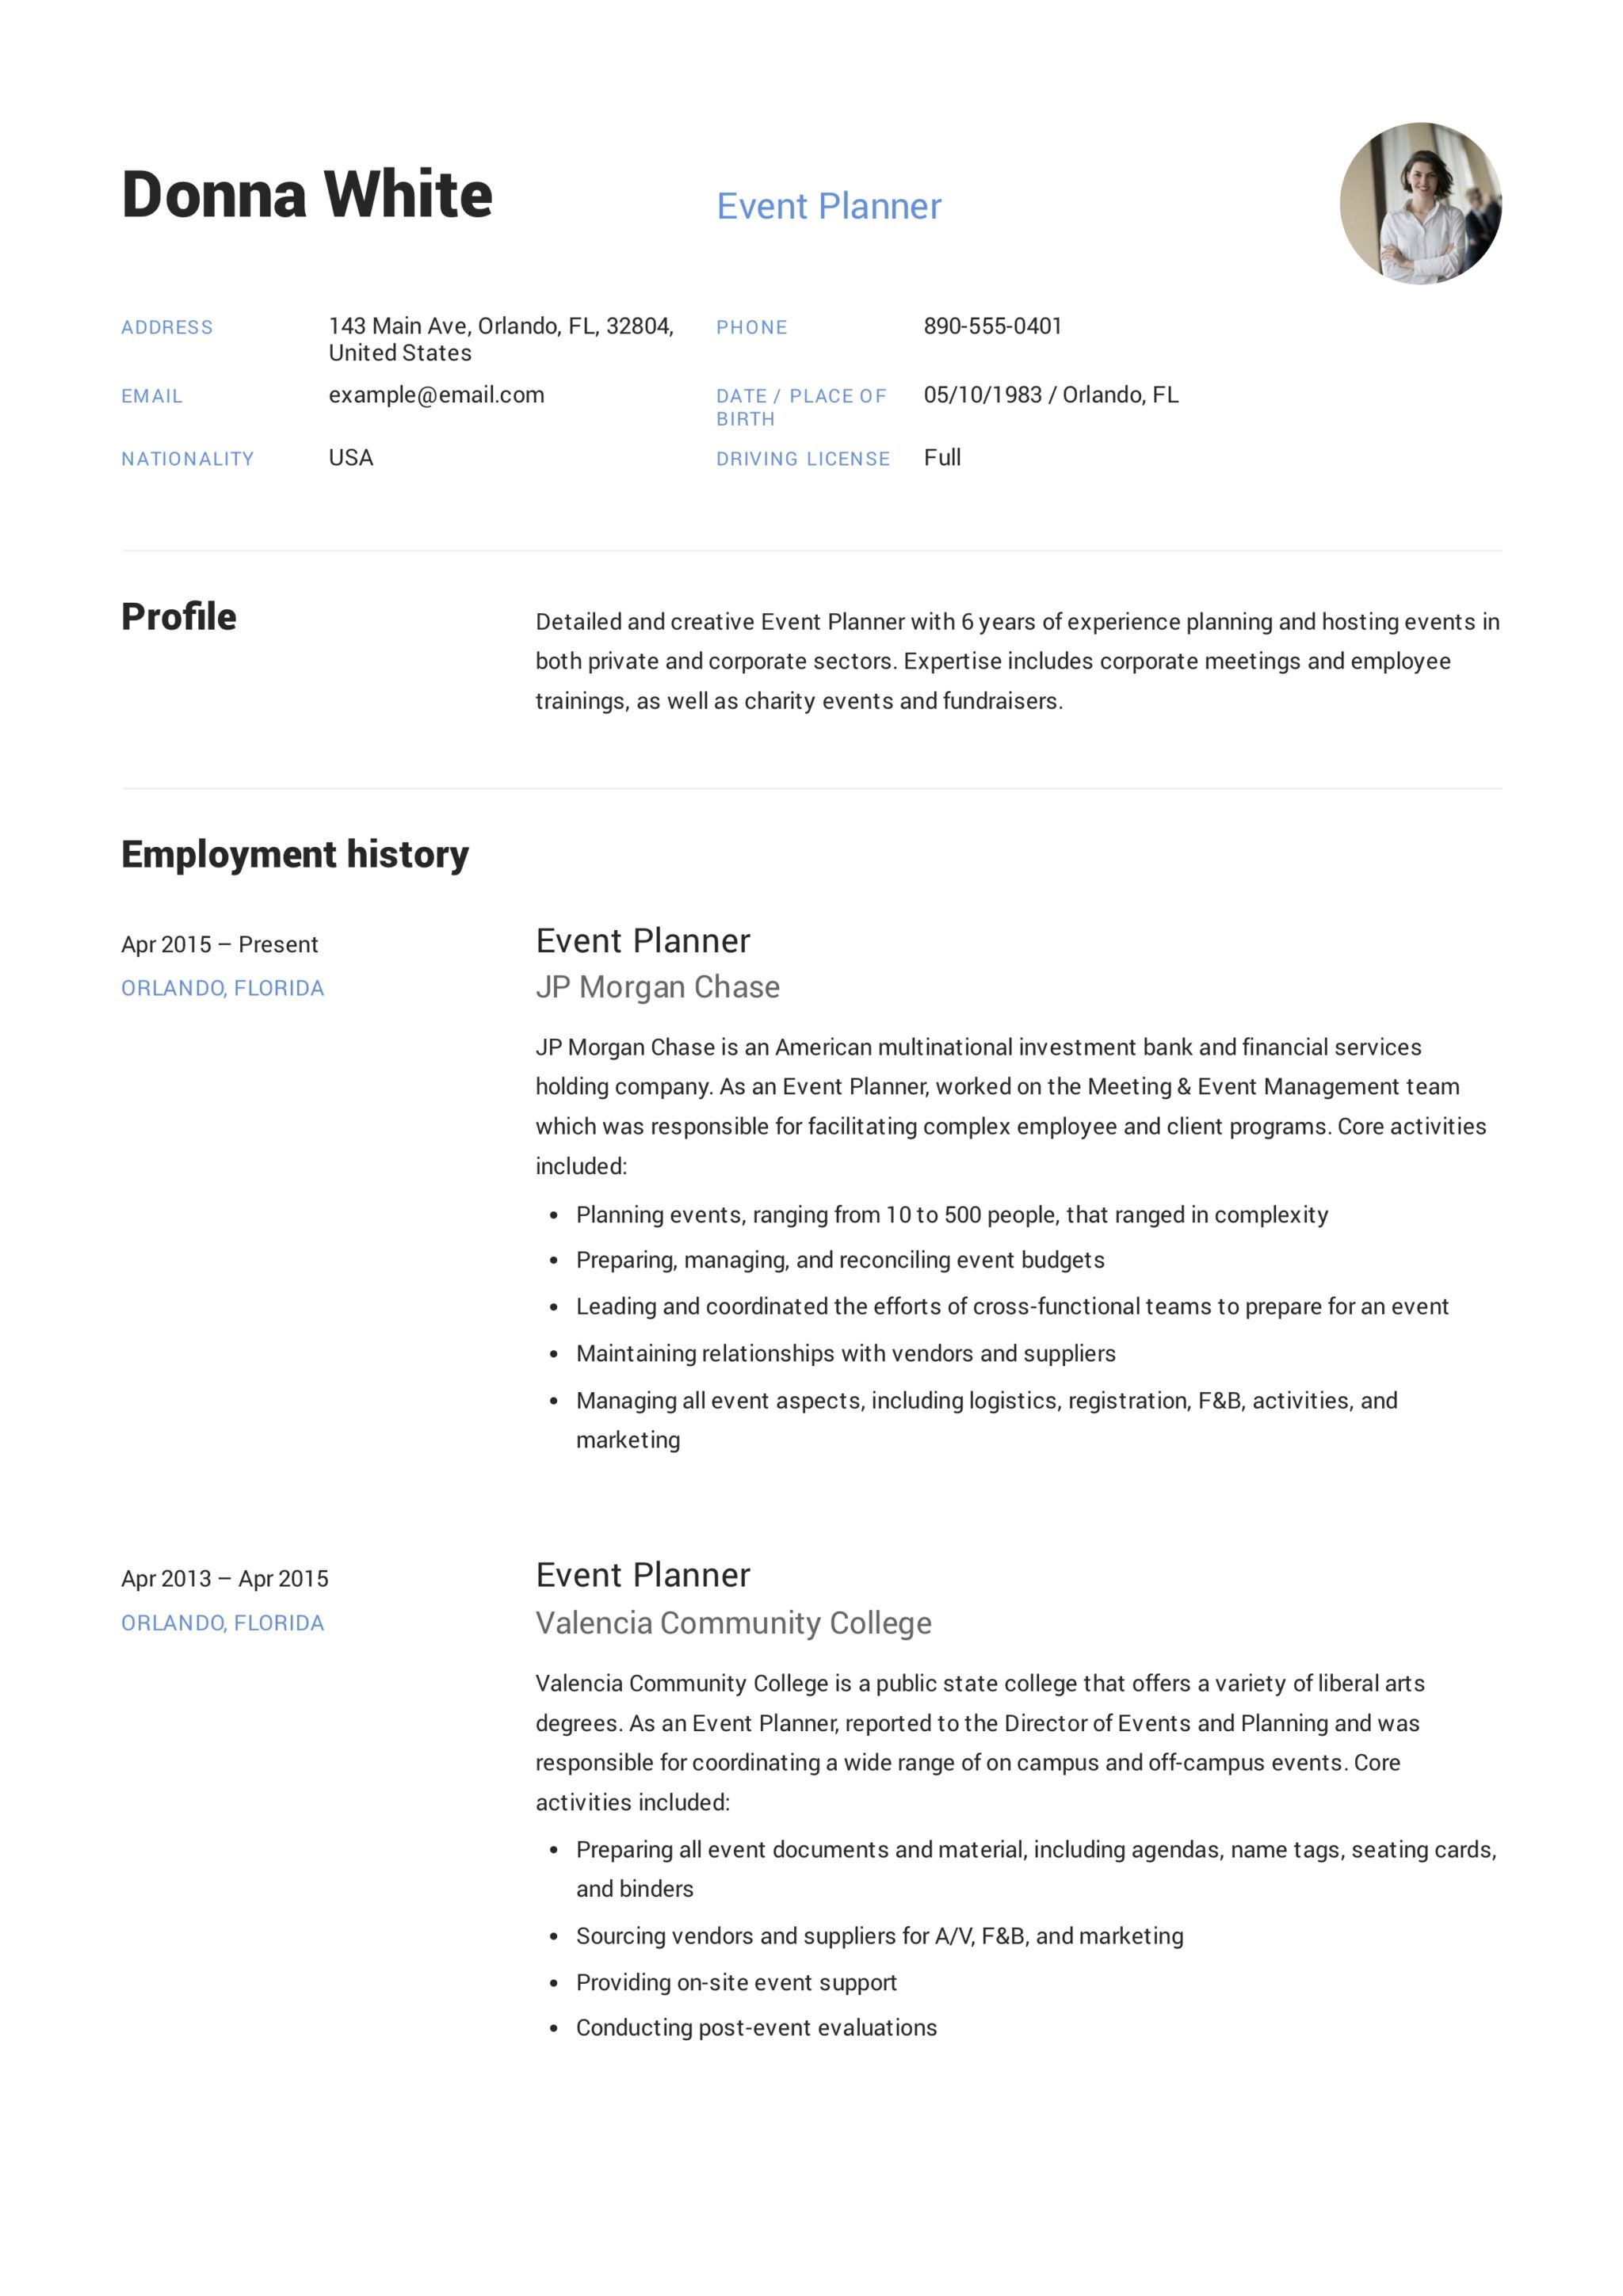 Guide Event Planner Resume 12 Samples Pdf Word 2020